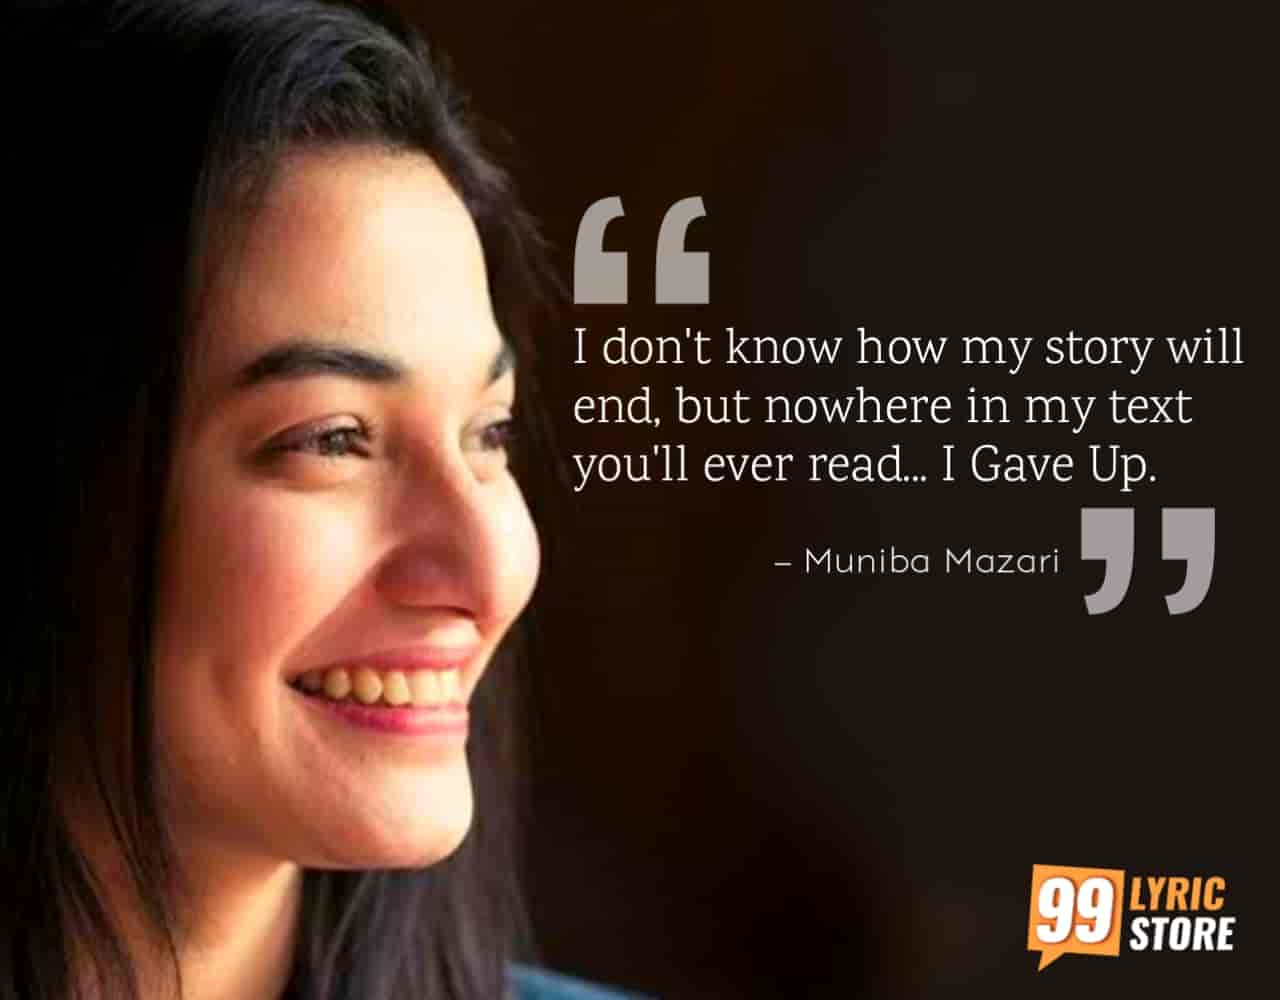 Motivational speaker Muniba Mazari gave another motivational speech which is very inspiring and also tells the life lessons of never giving up in life.